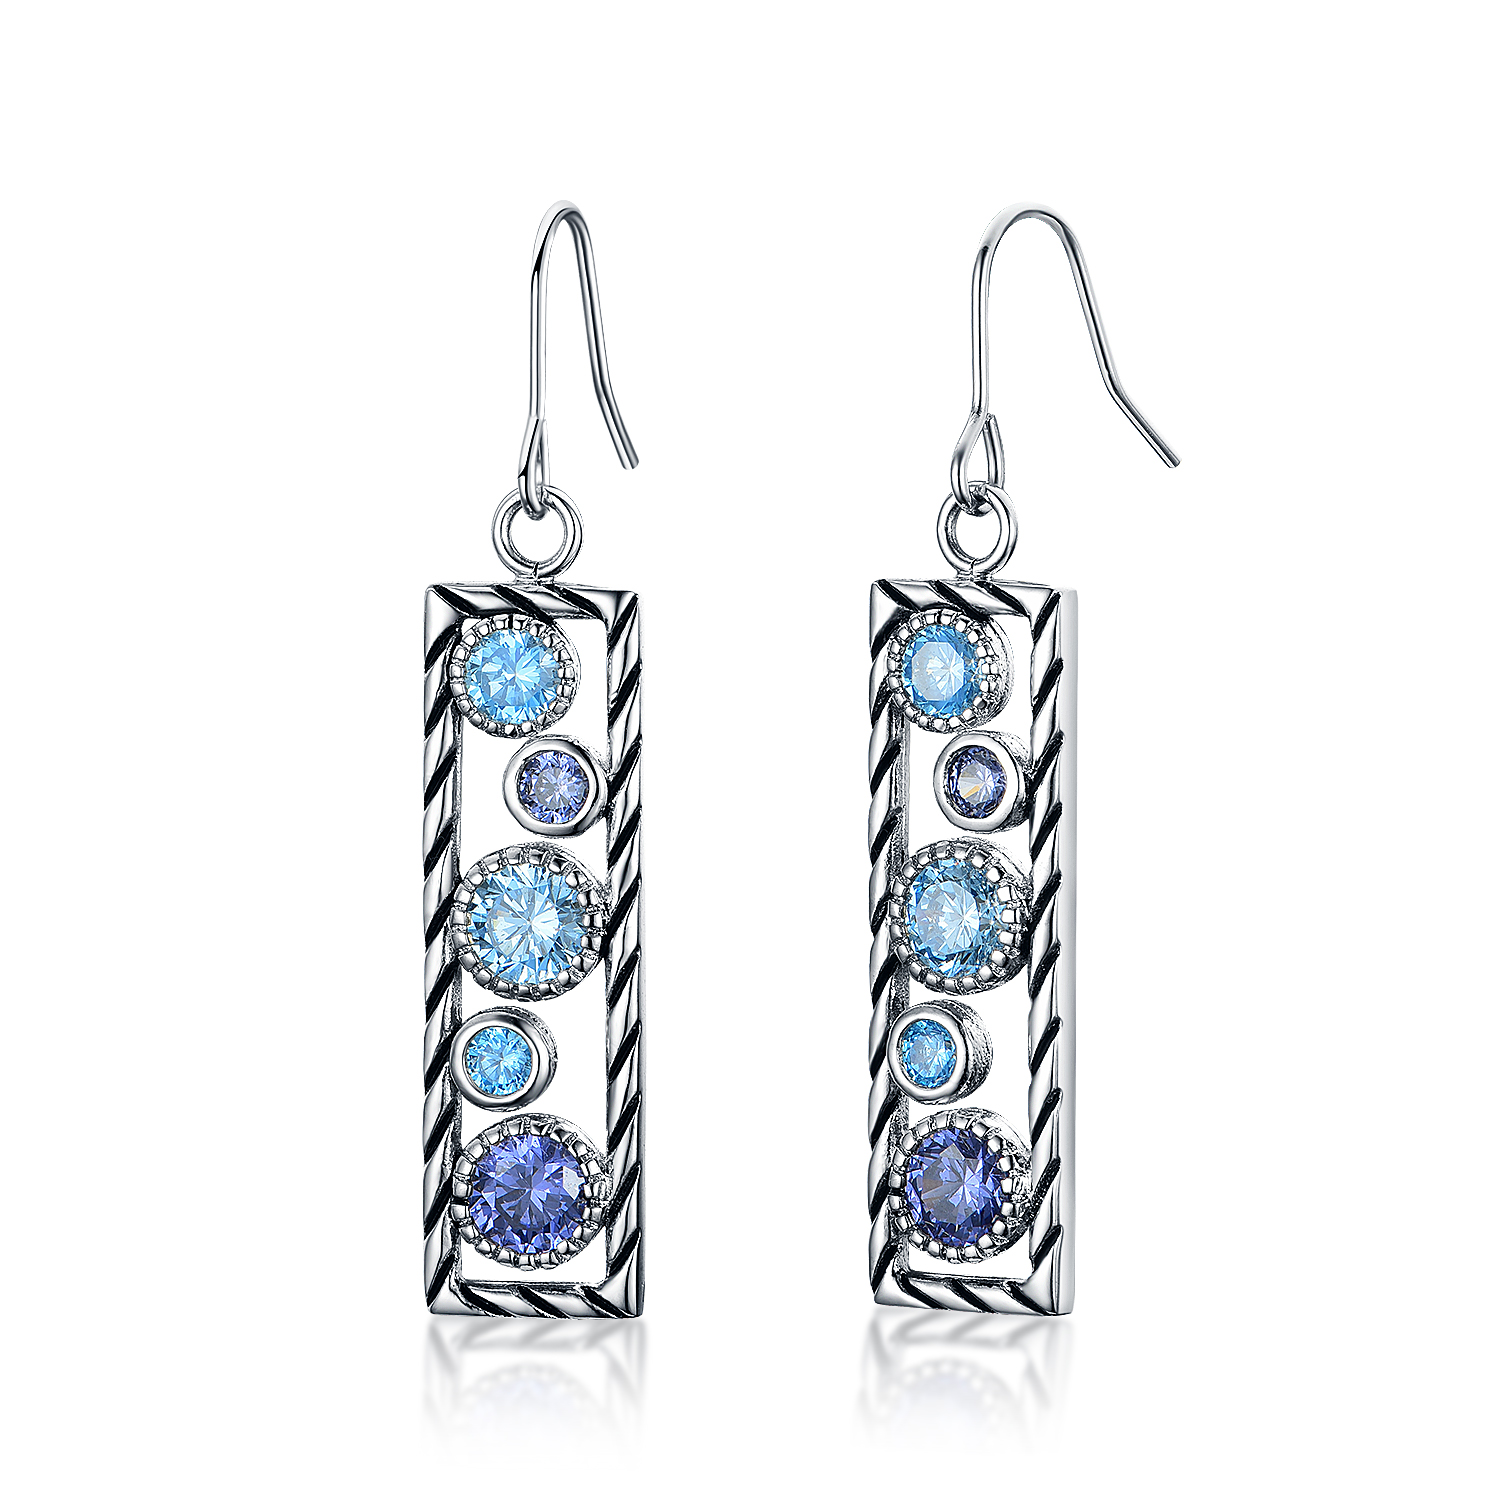 ST2696E-Designer inspired Cable texture dangling Earring with bezel setting Tanzanite Cubic Zircon & Aquamarine Spinel in Brass/Copper under Rhodium plated from China Top Jewelry factory